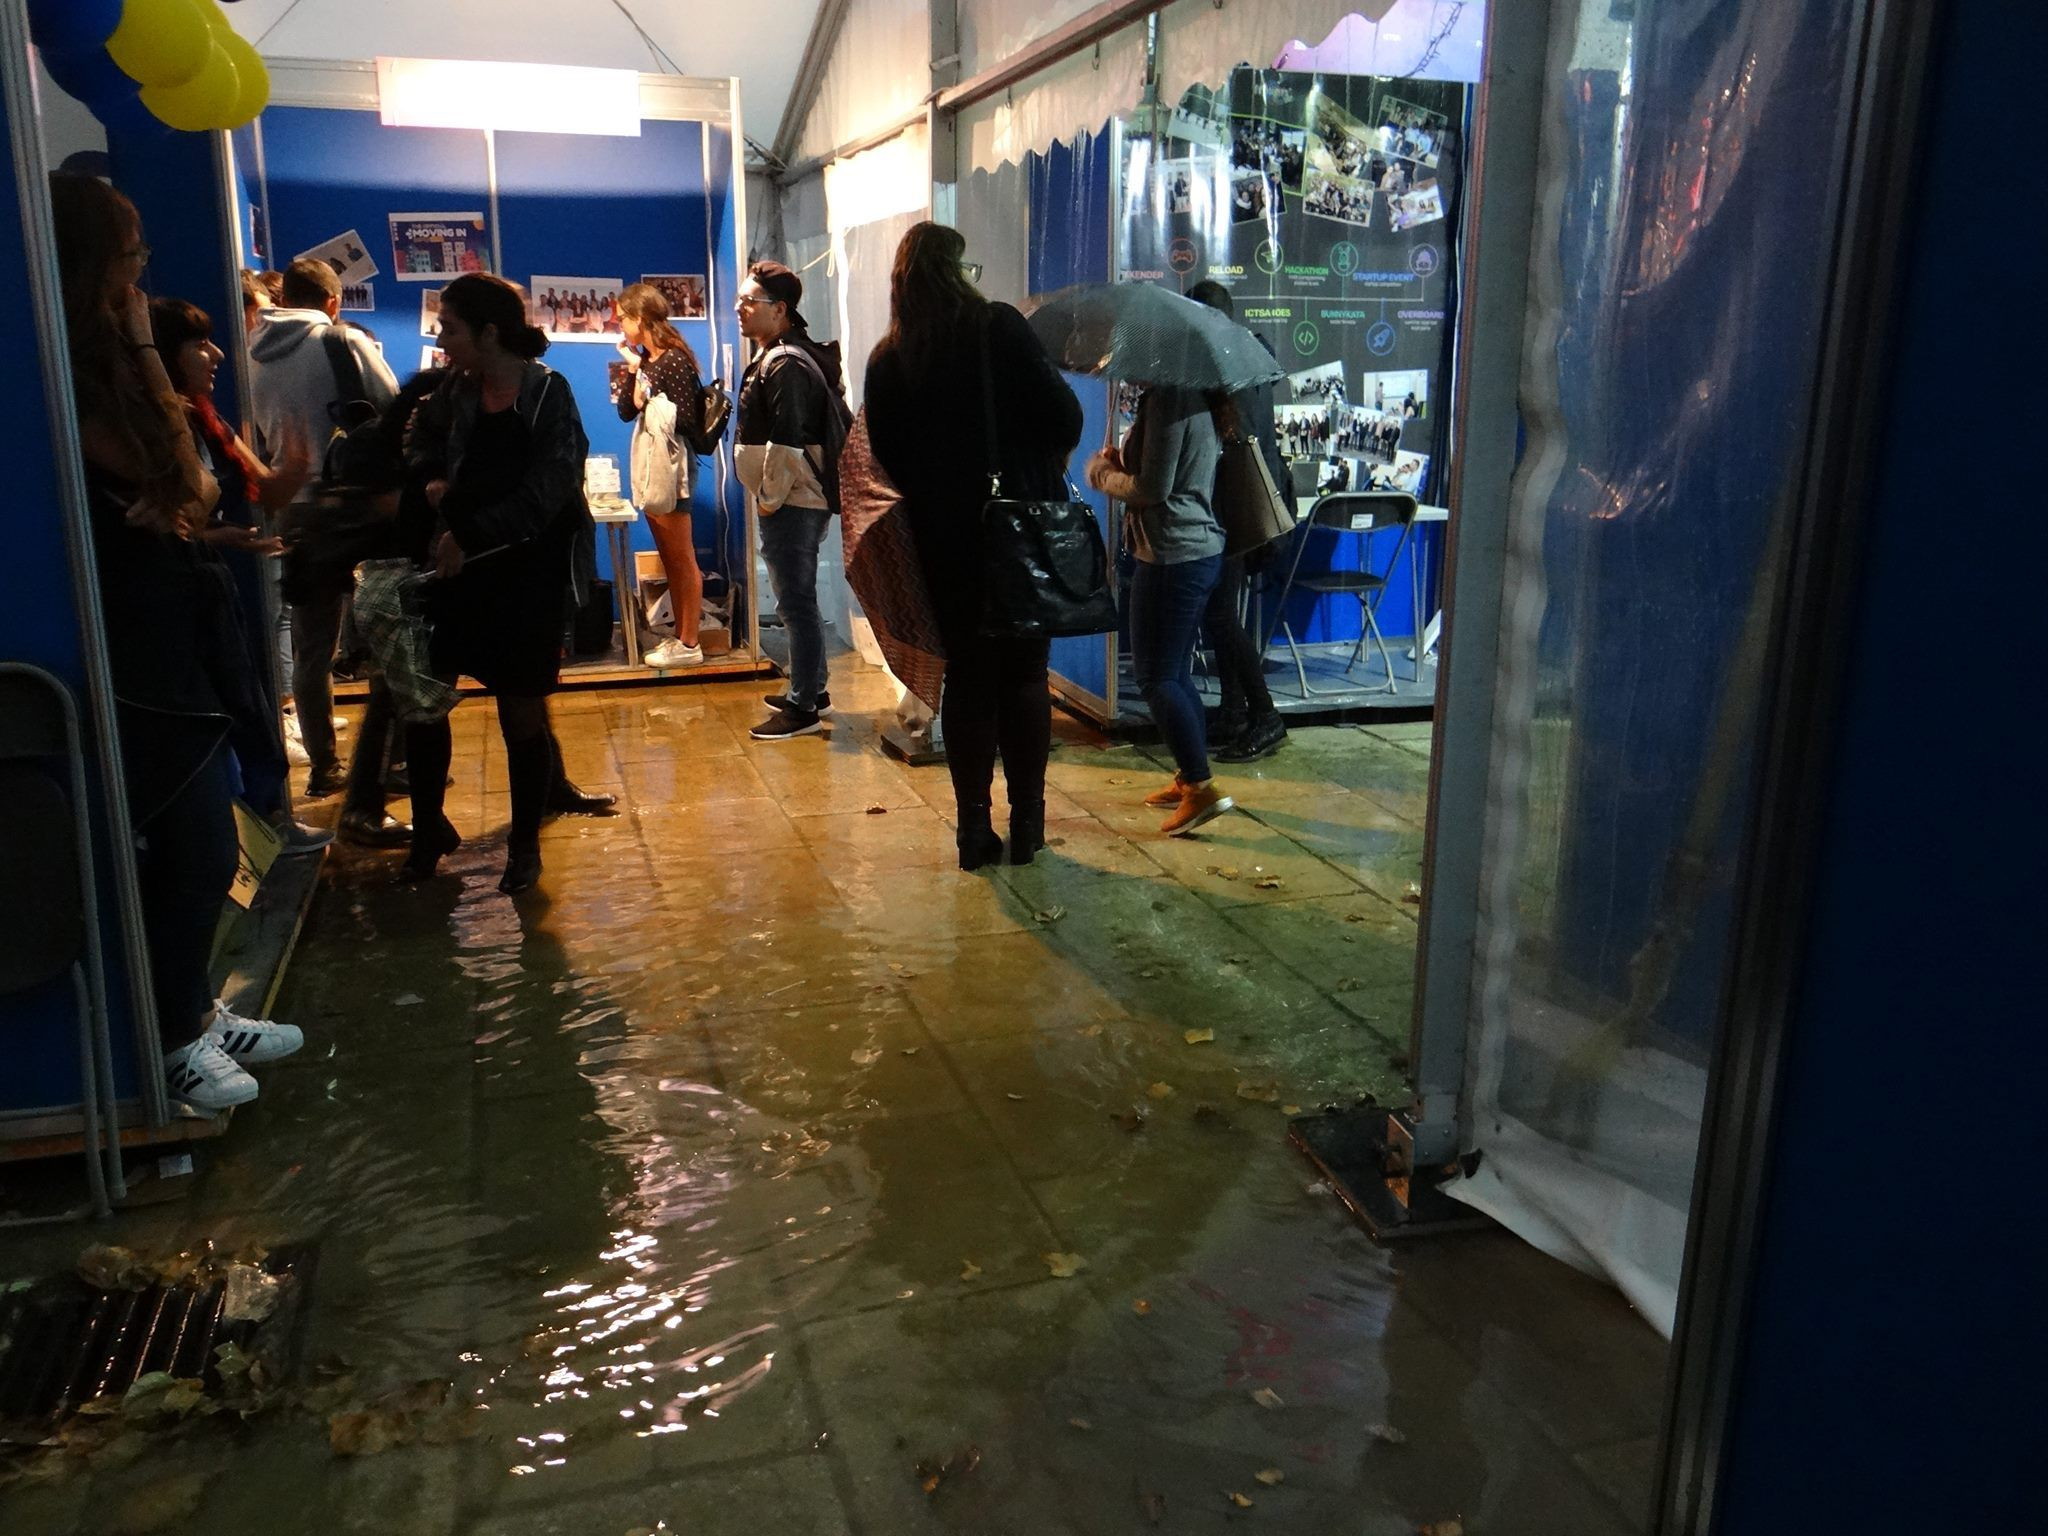 Inches of water covering the area in front of student organisations' stands